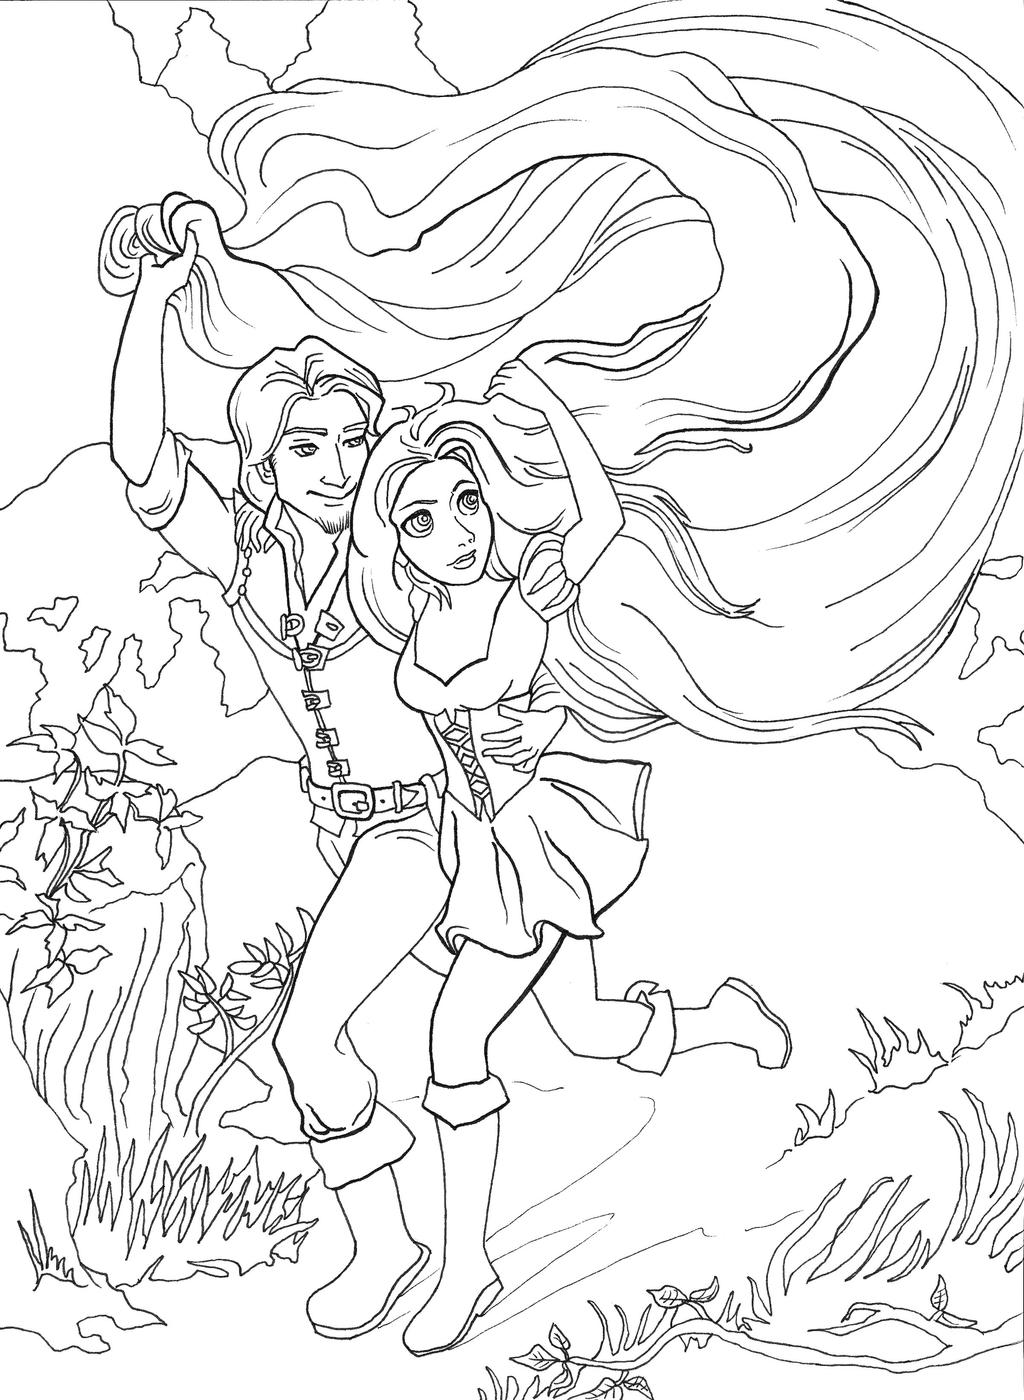 Disney princesses group coloring pages